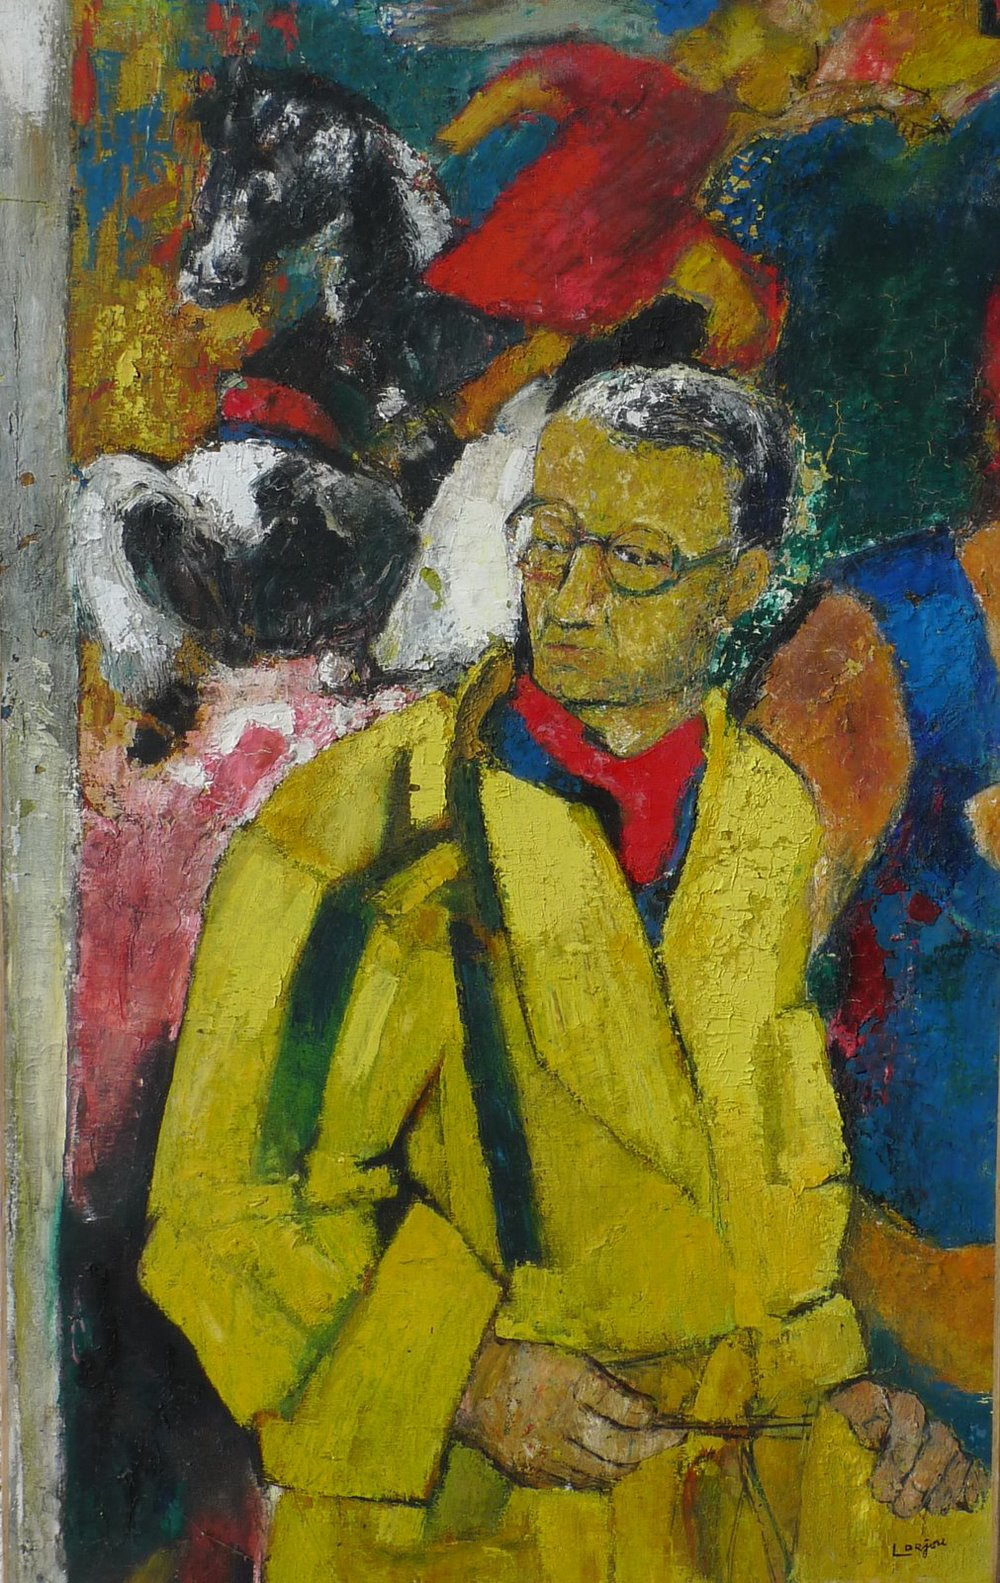 Autoportrait in yellow (c.1945-49)